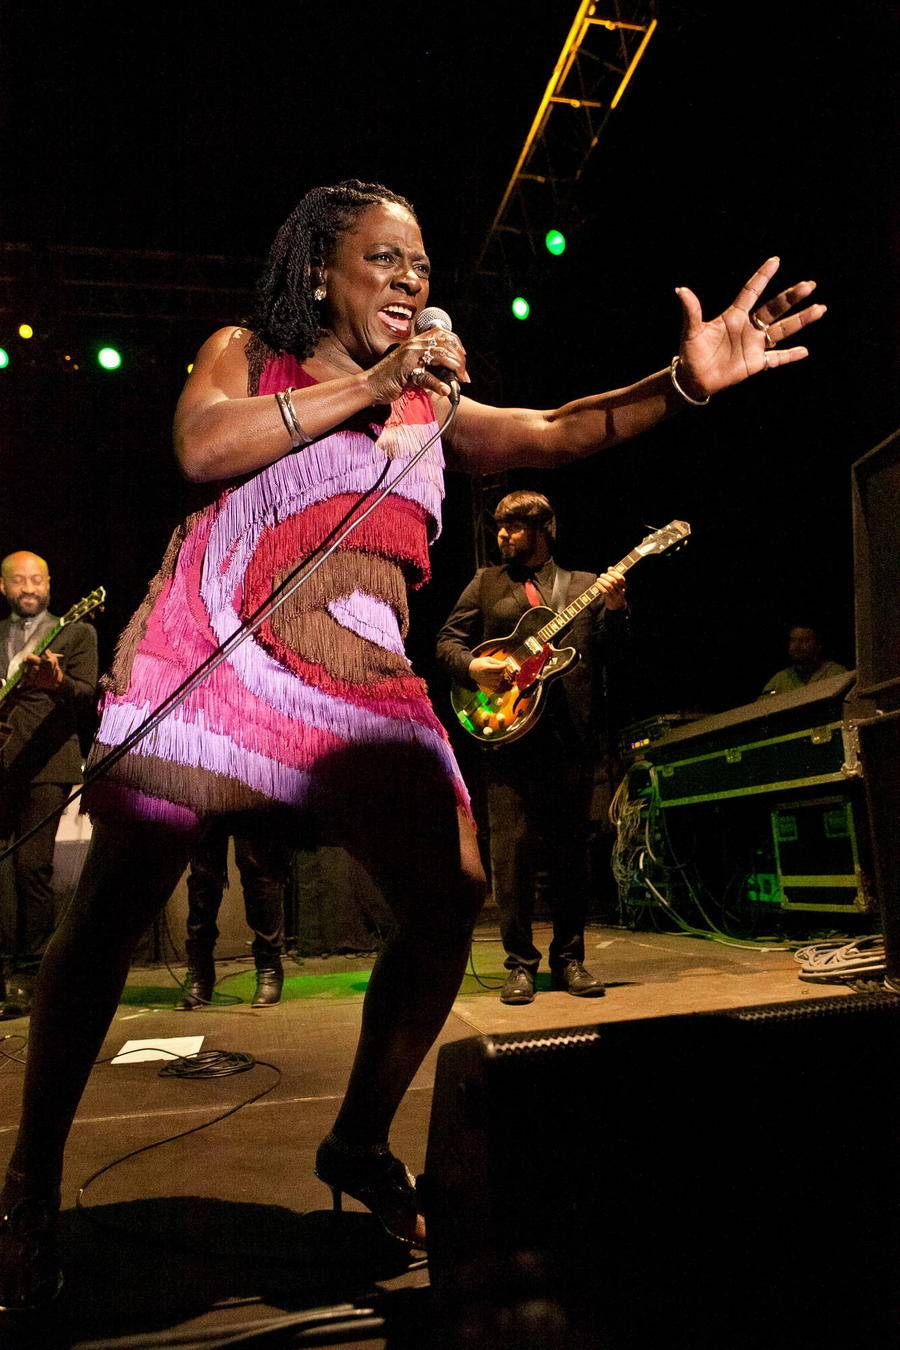 Sharon Jones 'Blamed Donald Trump For Election Night Stroke'